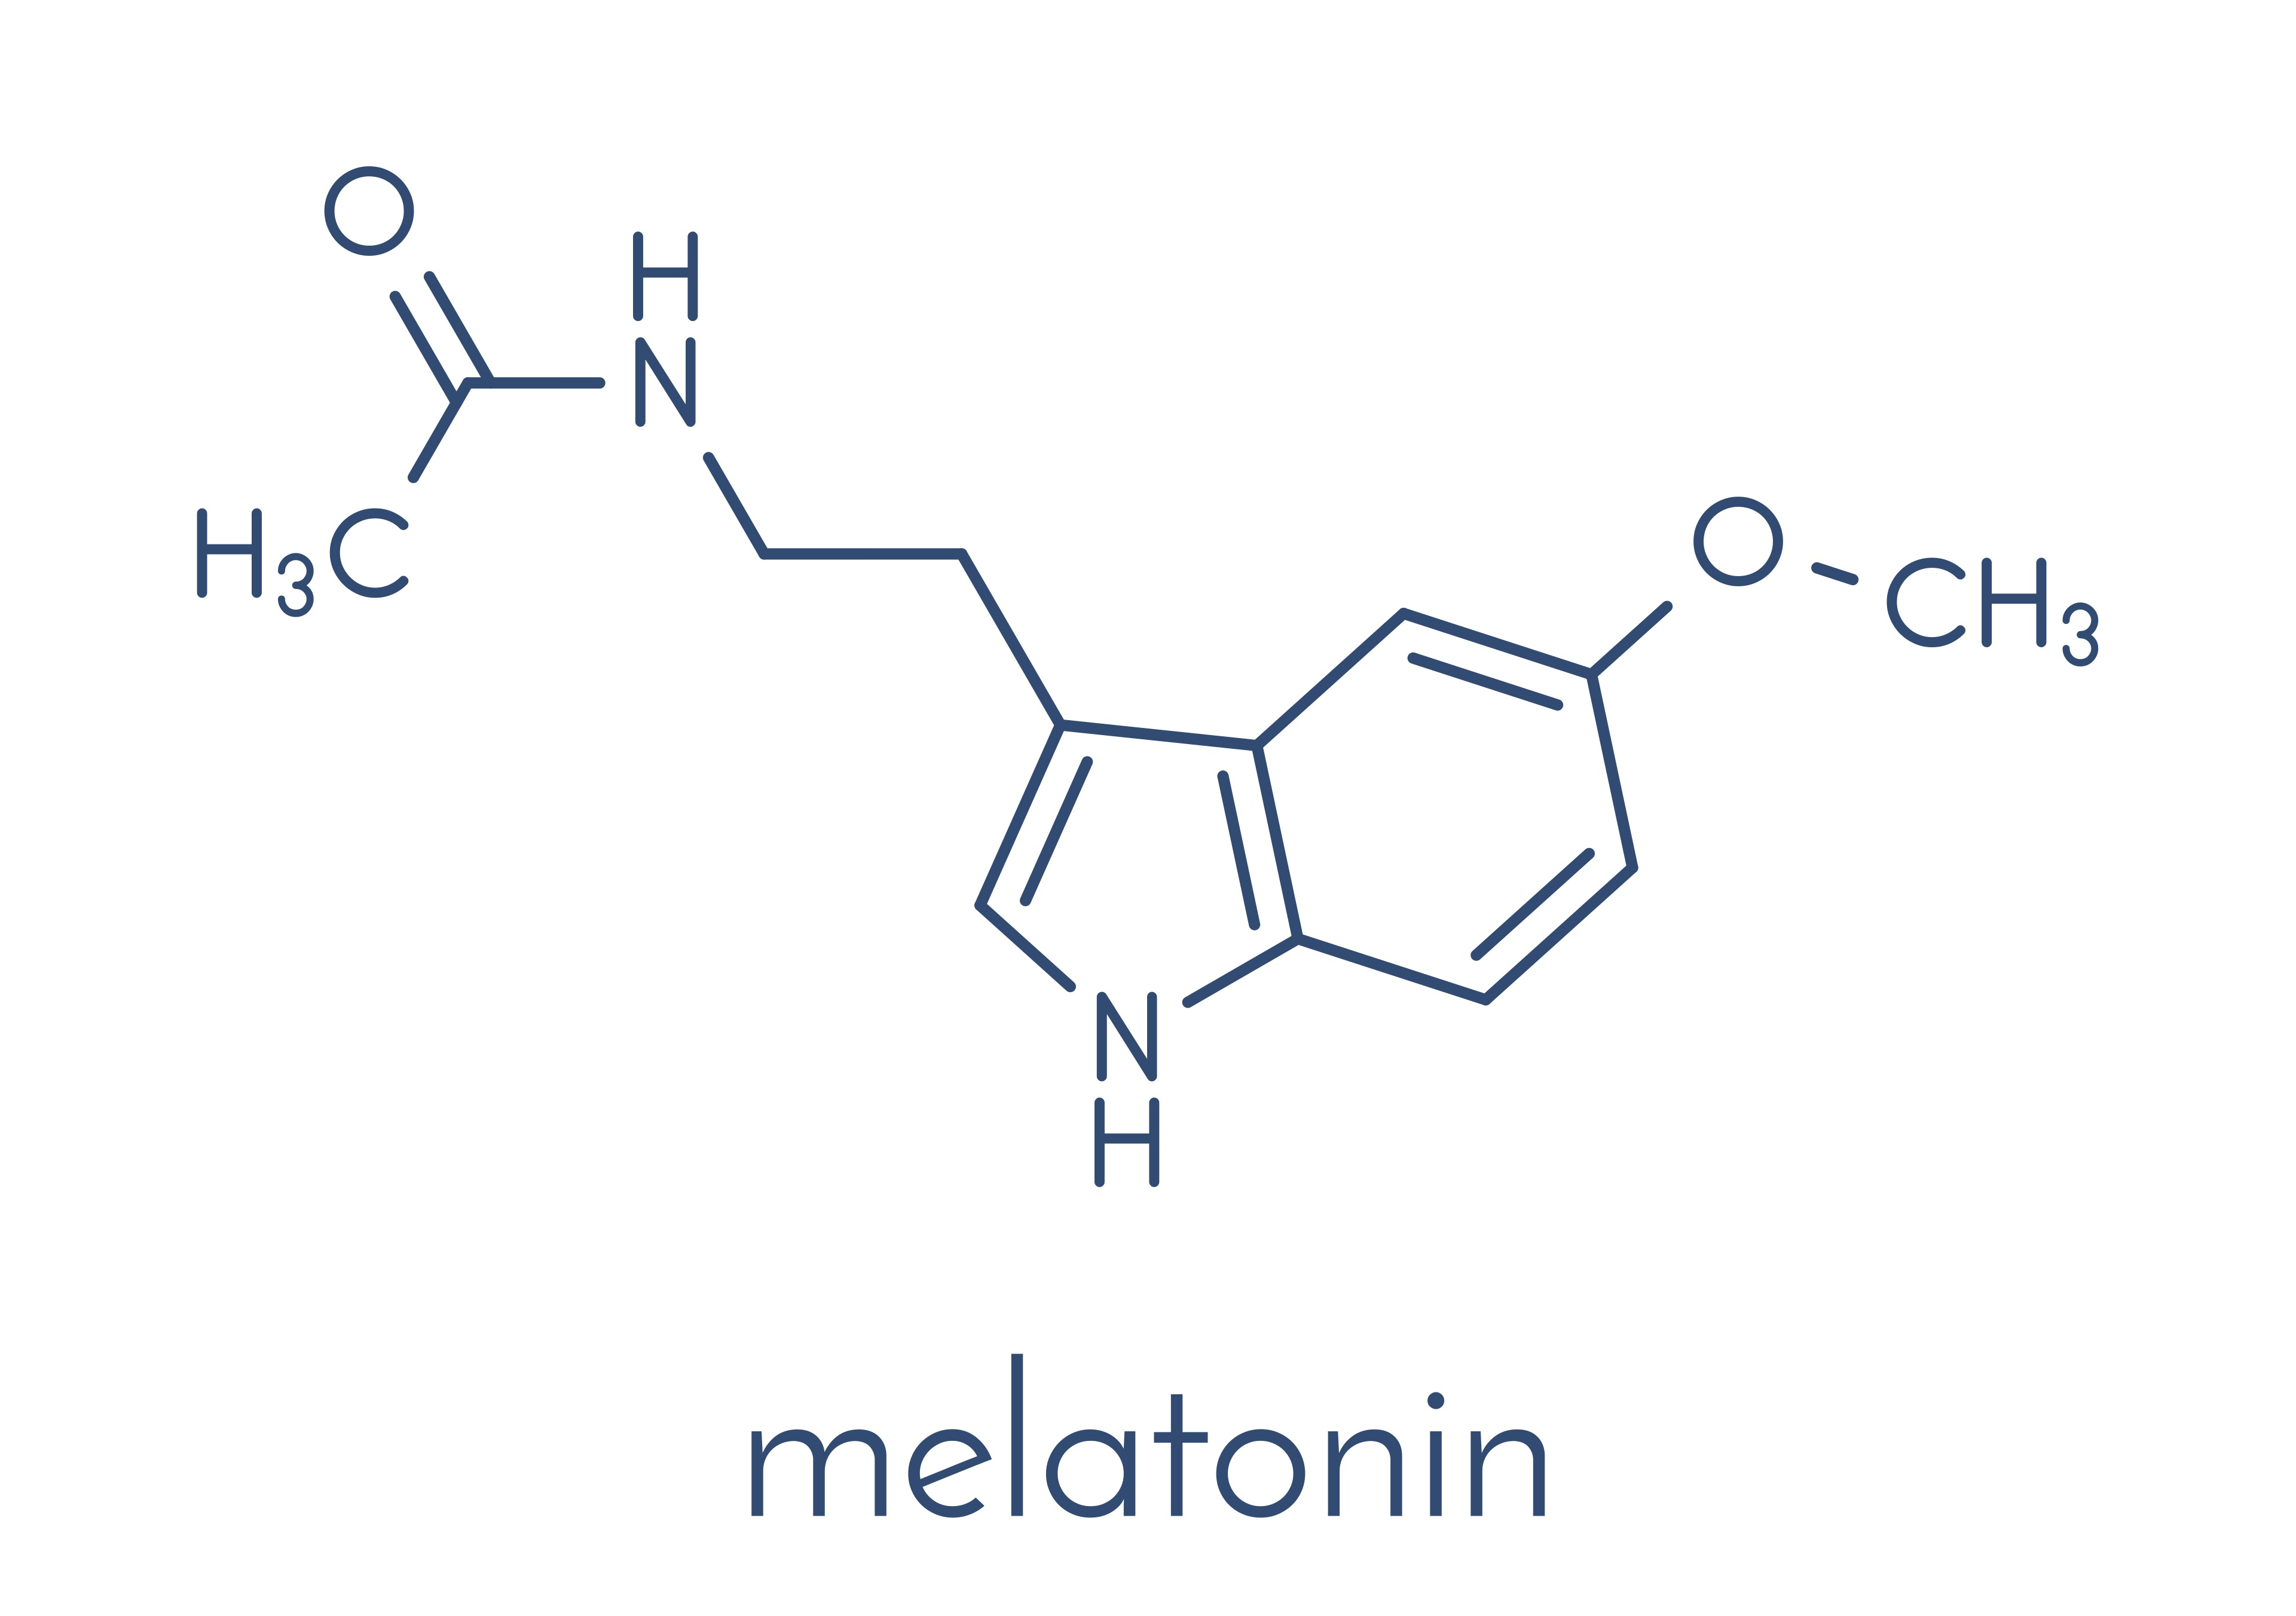 Melatonin is used as a coping strategy for sleep during shift work